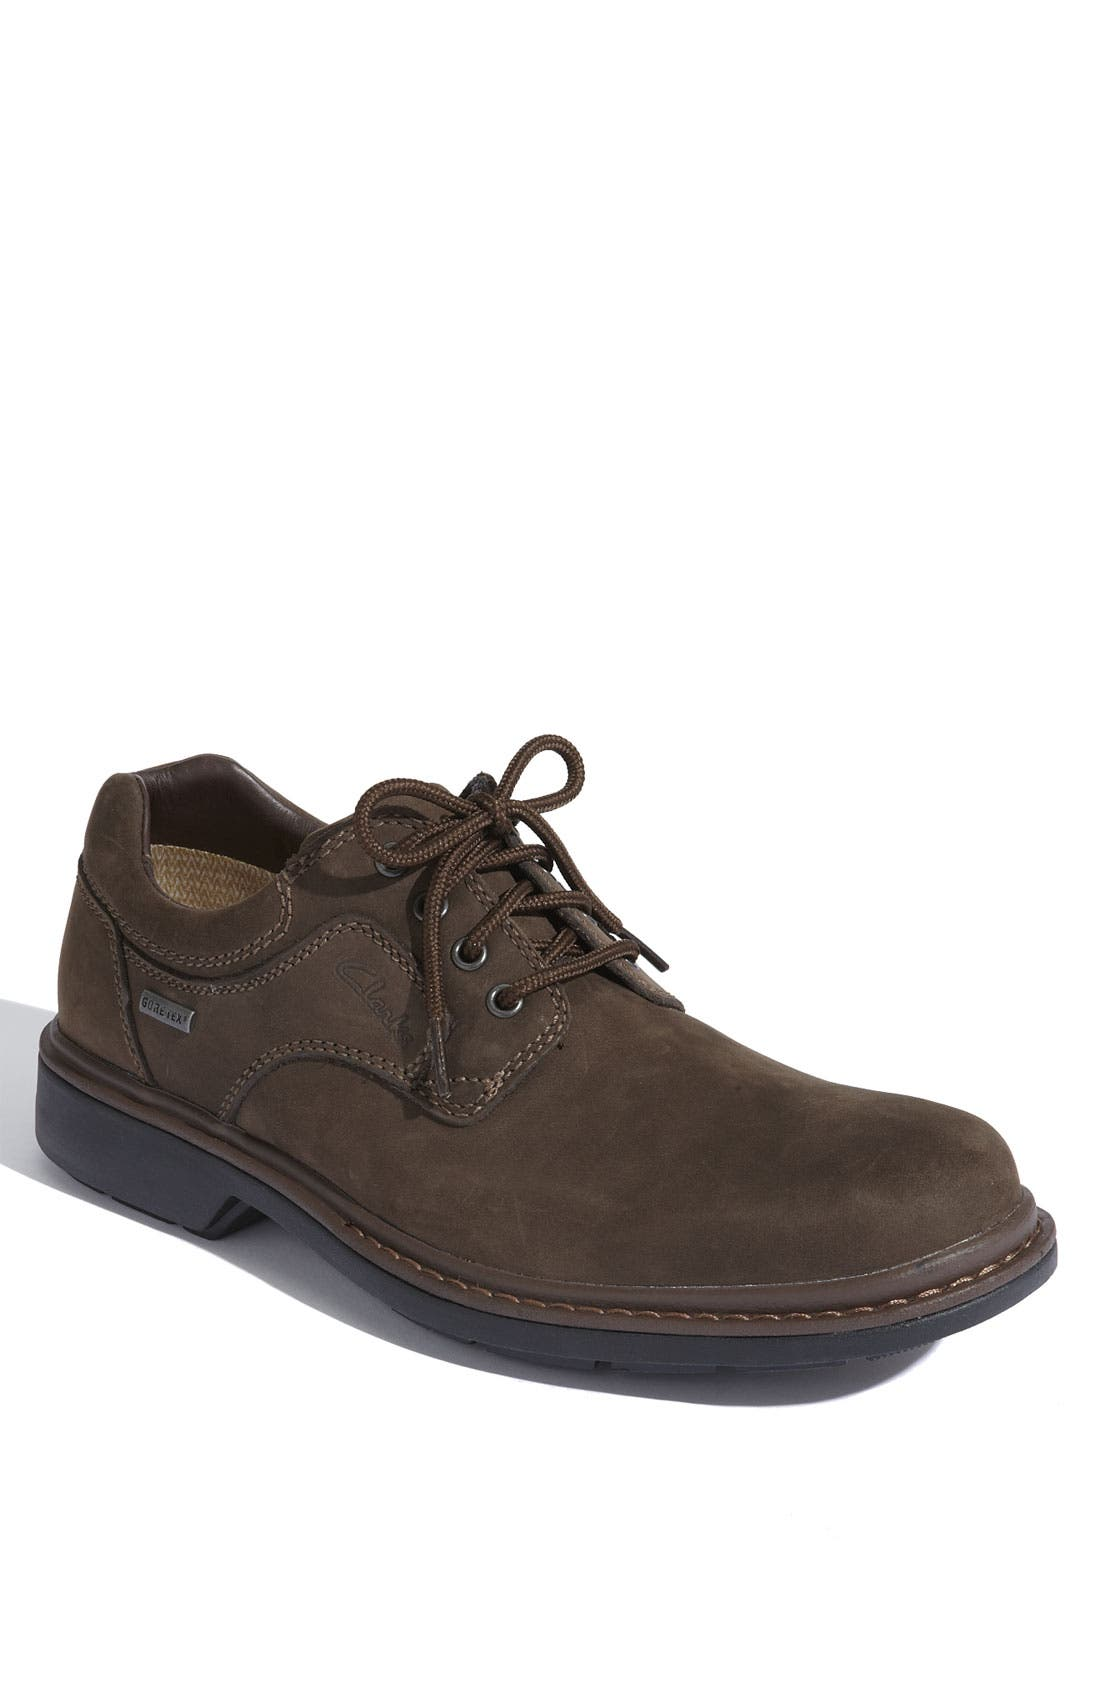 Main Image - Clarks® 'Rockie Lo' Oxford   (Men)